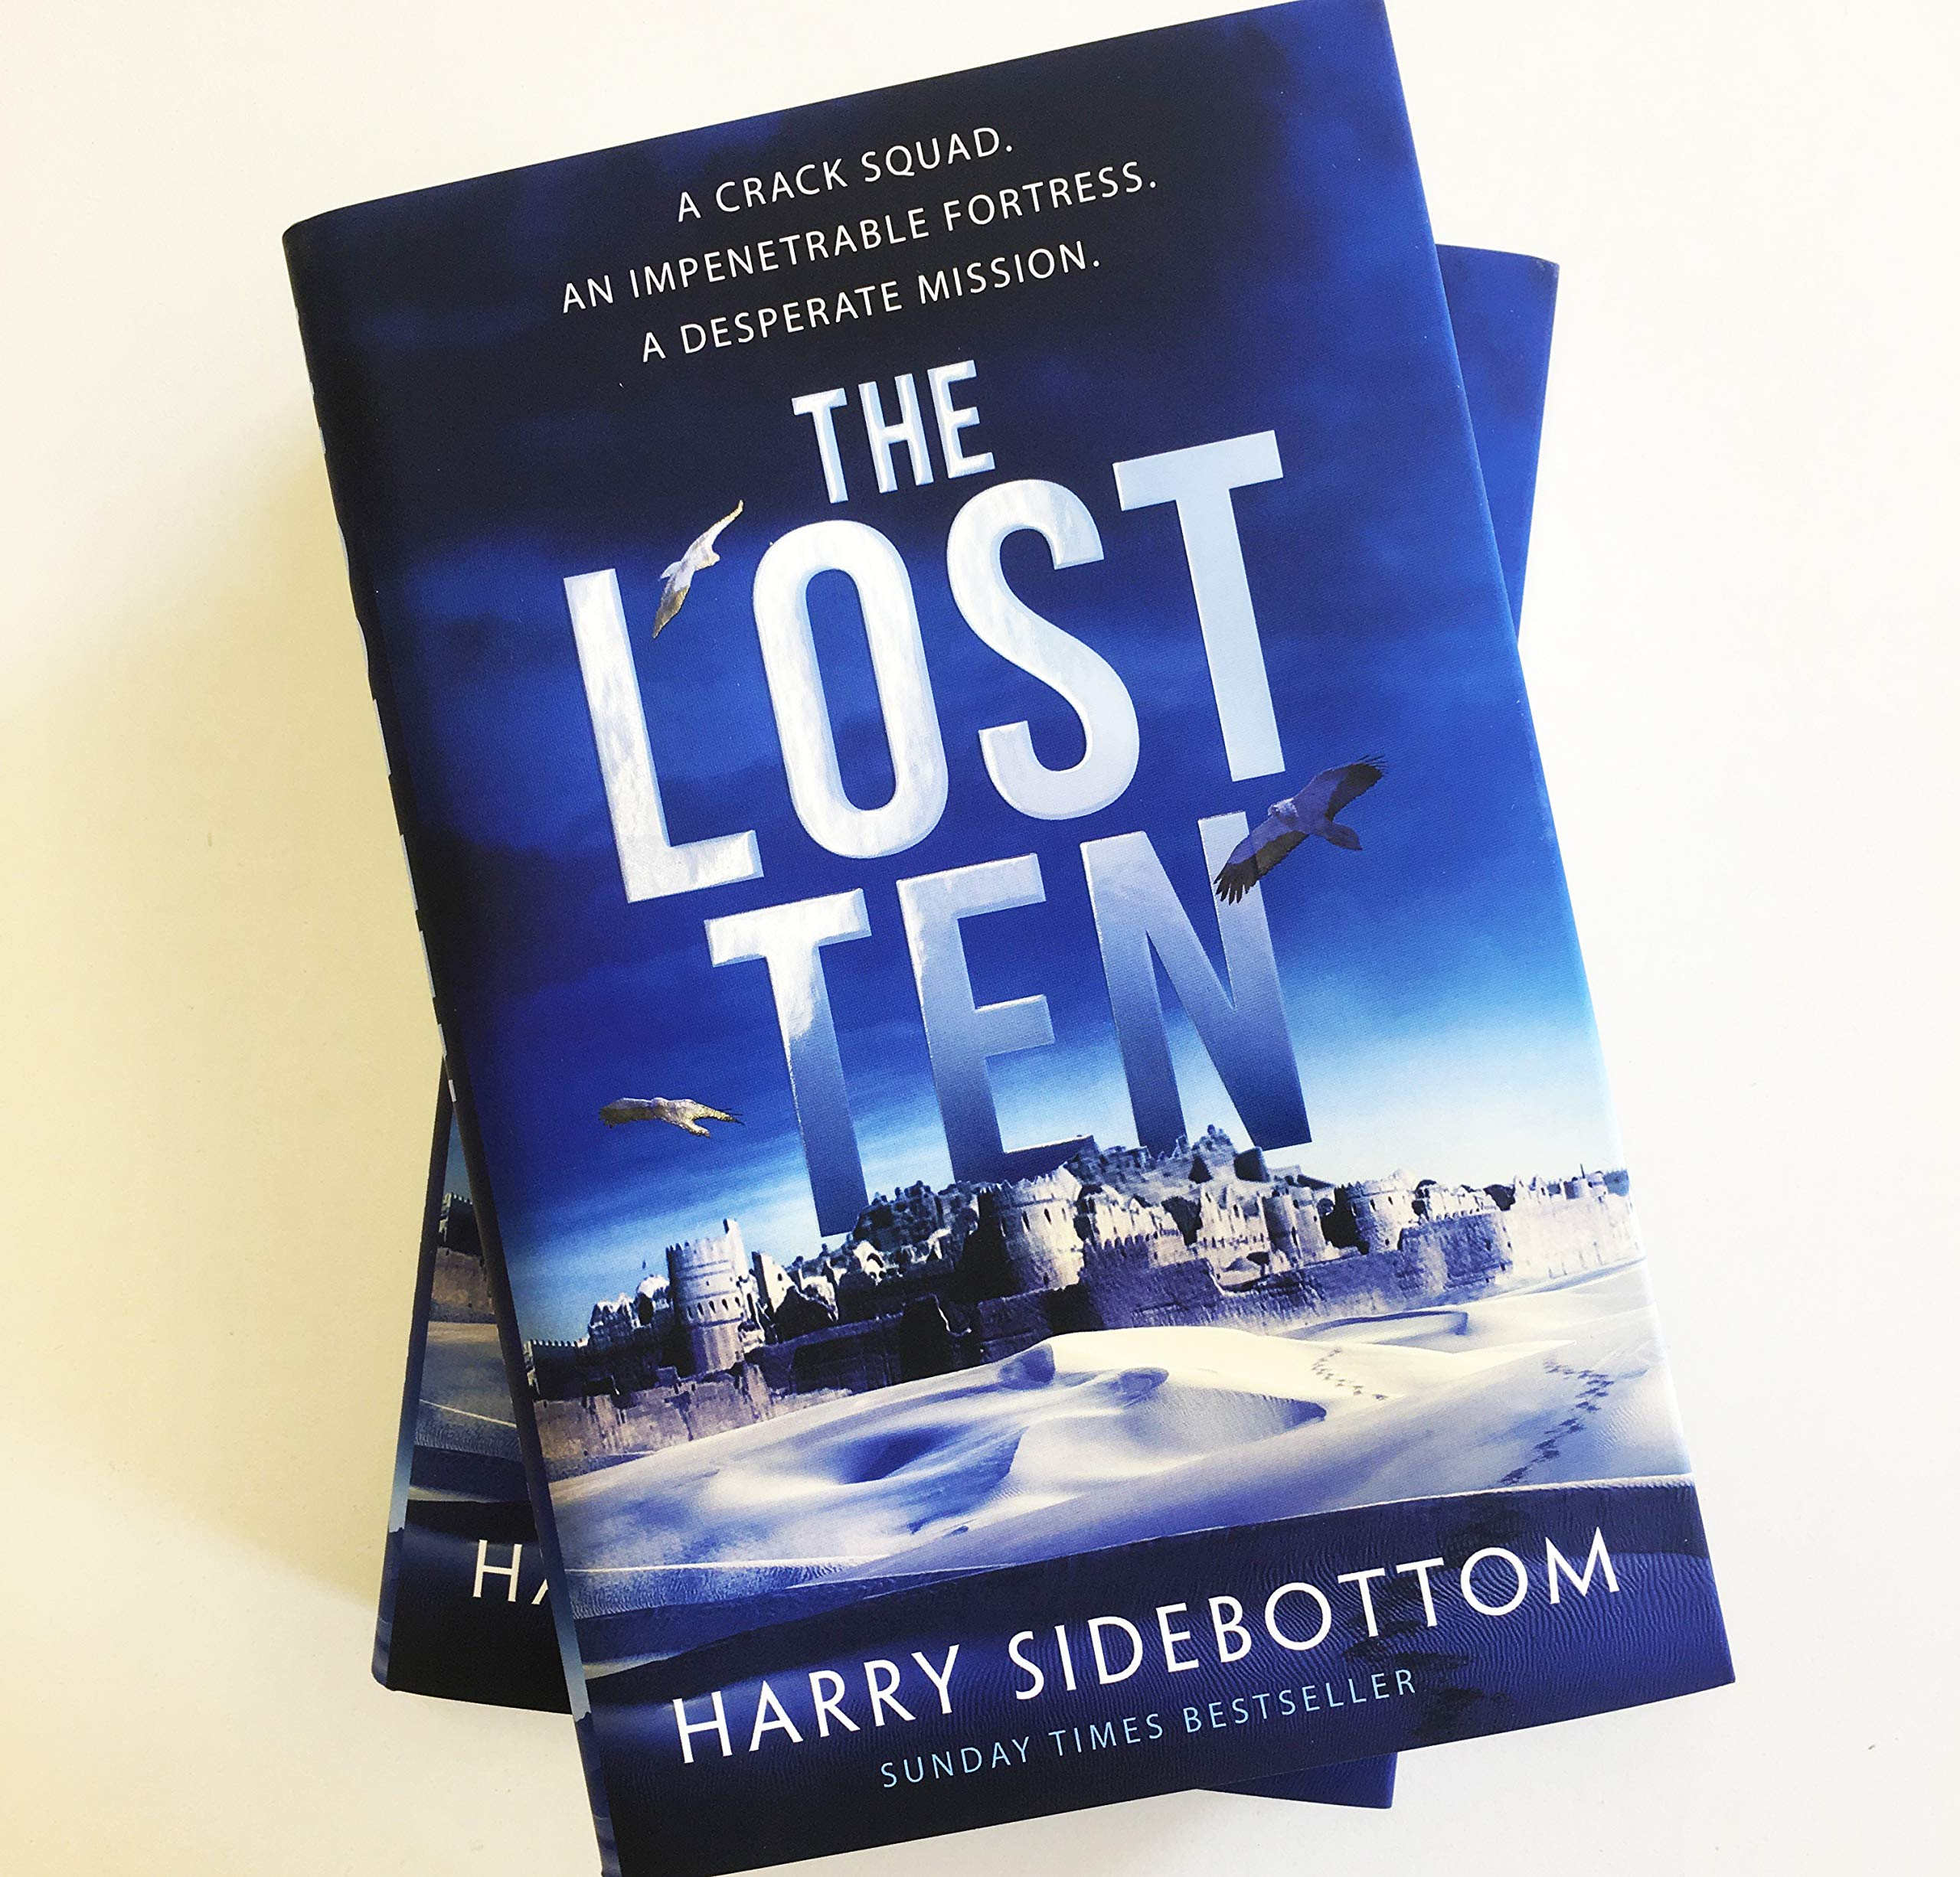 Harry_Sidebottom_The_Lost_Ten